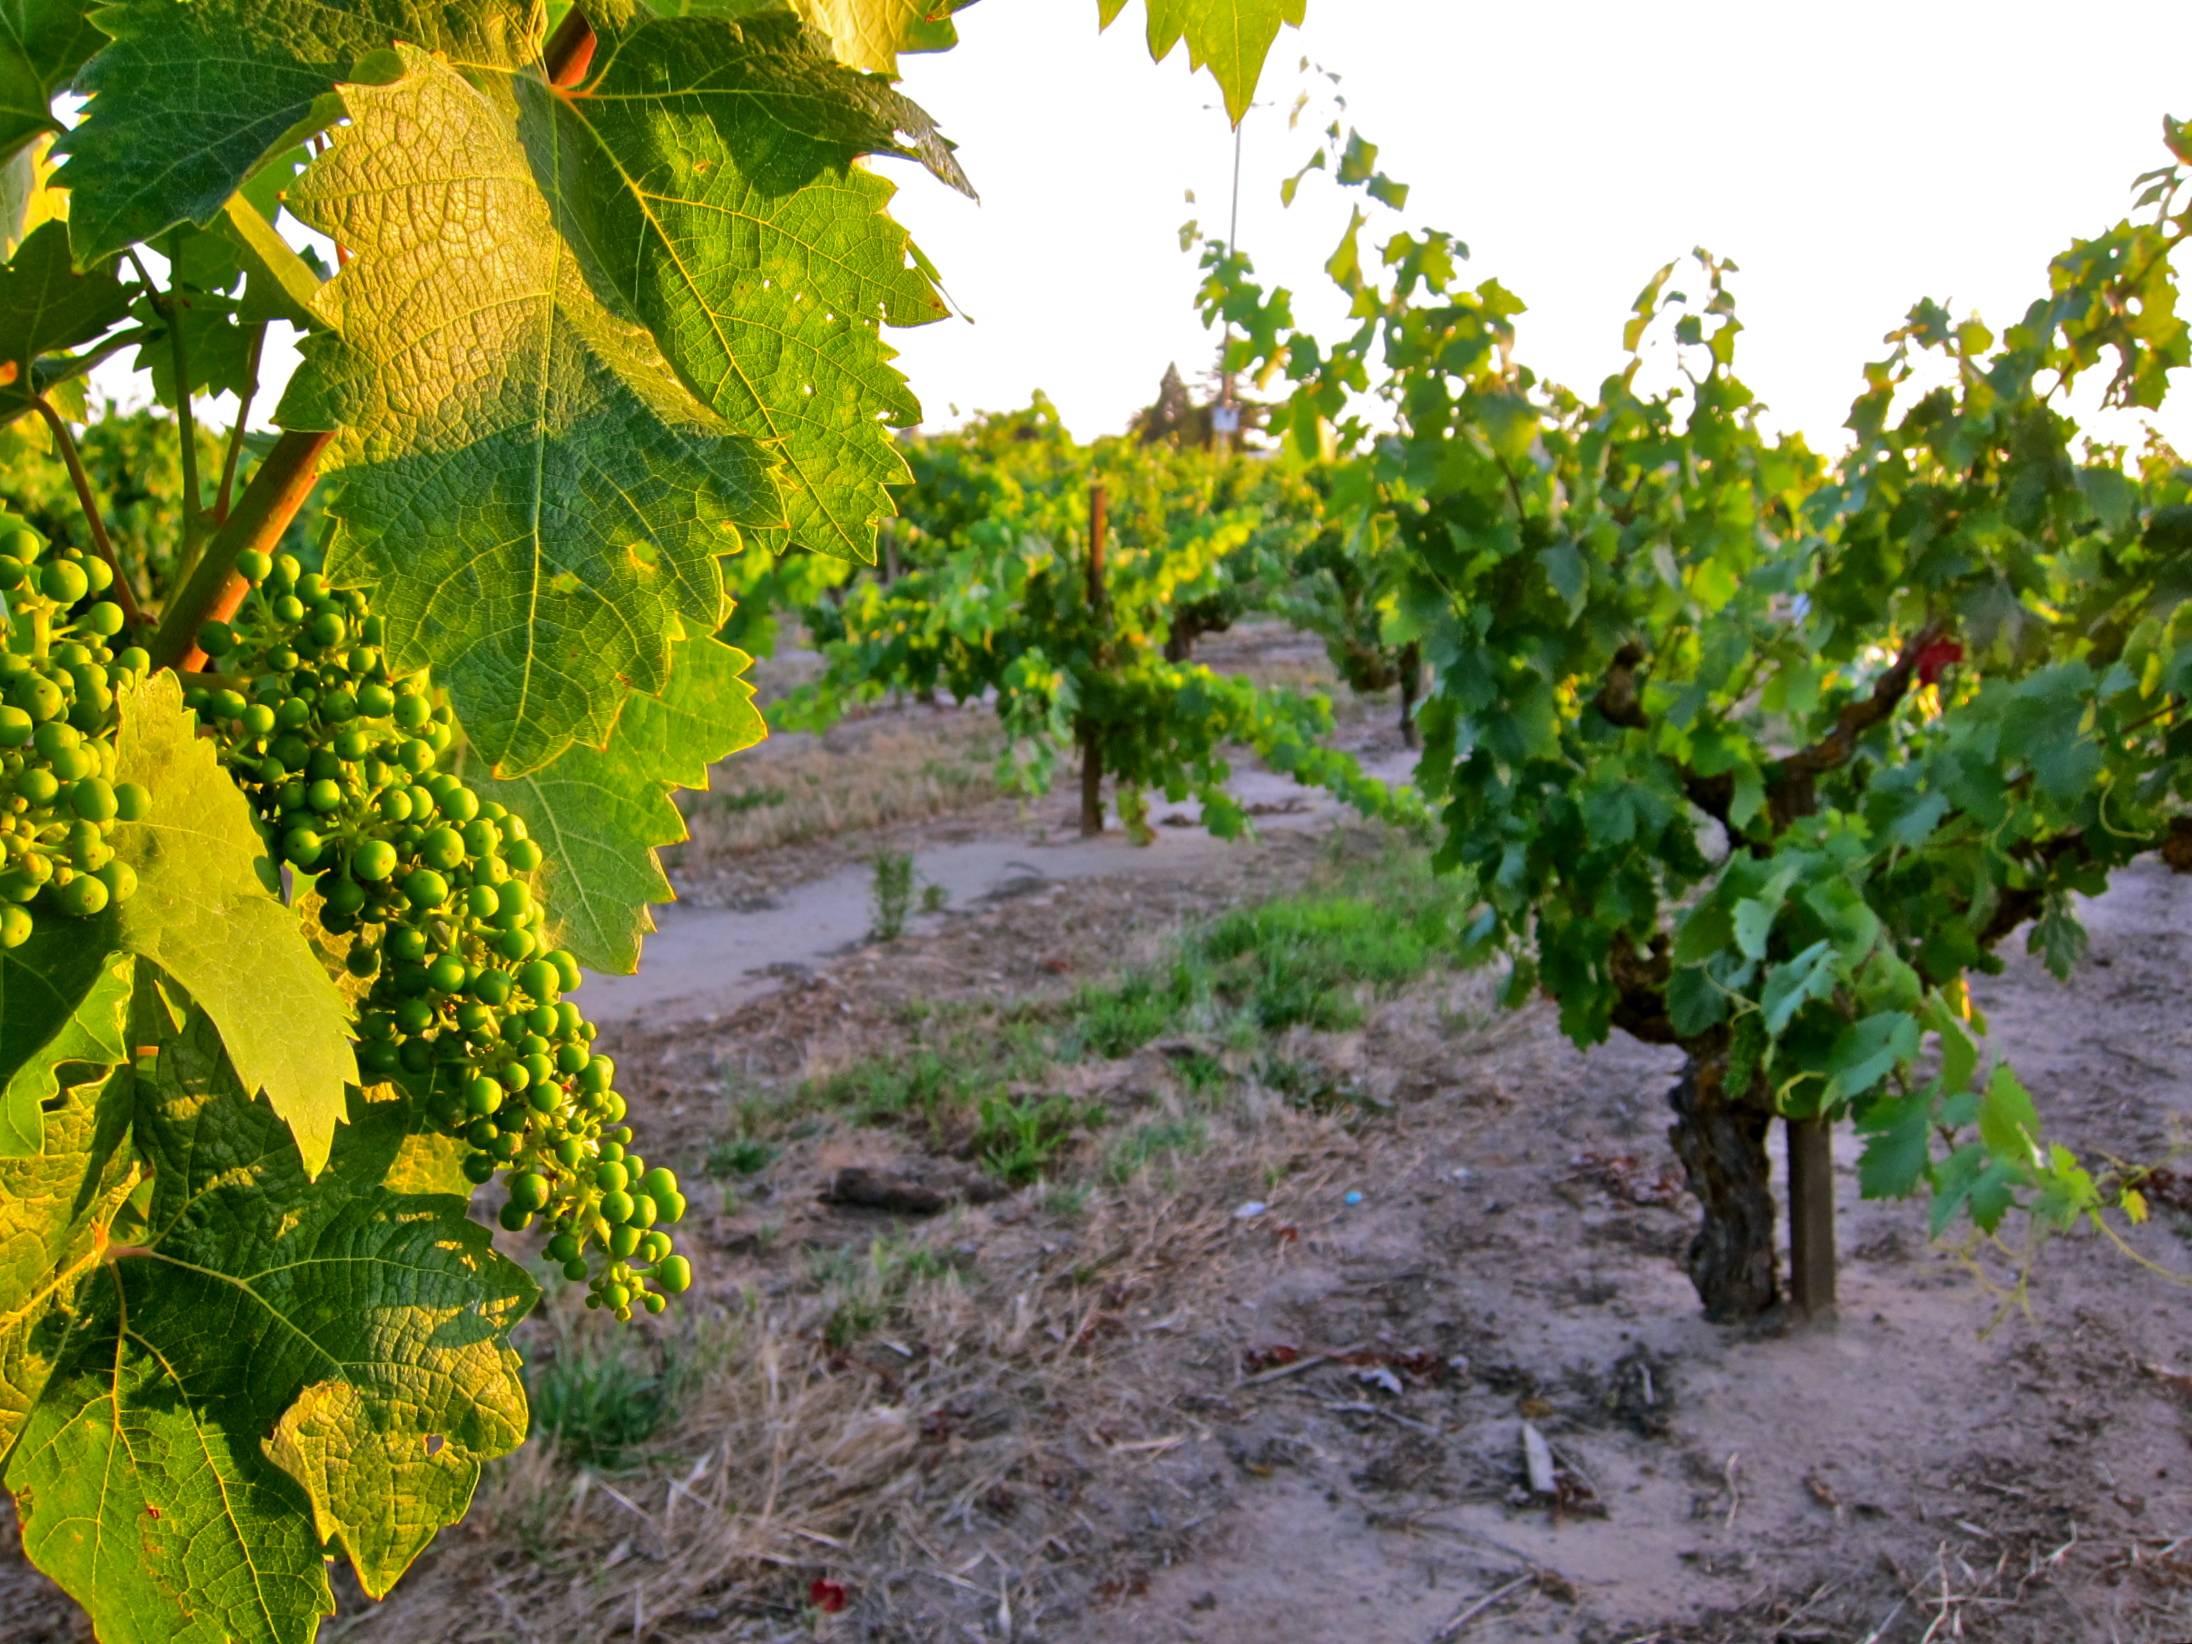 Update on 2011 Lodi wine crop